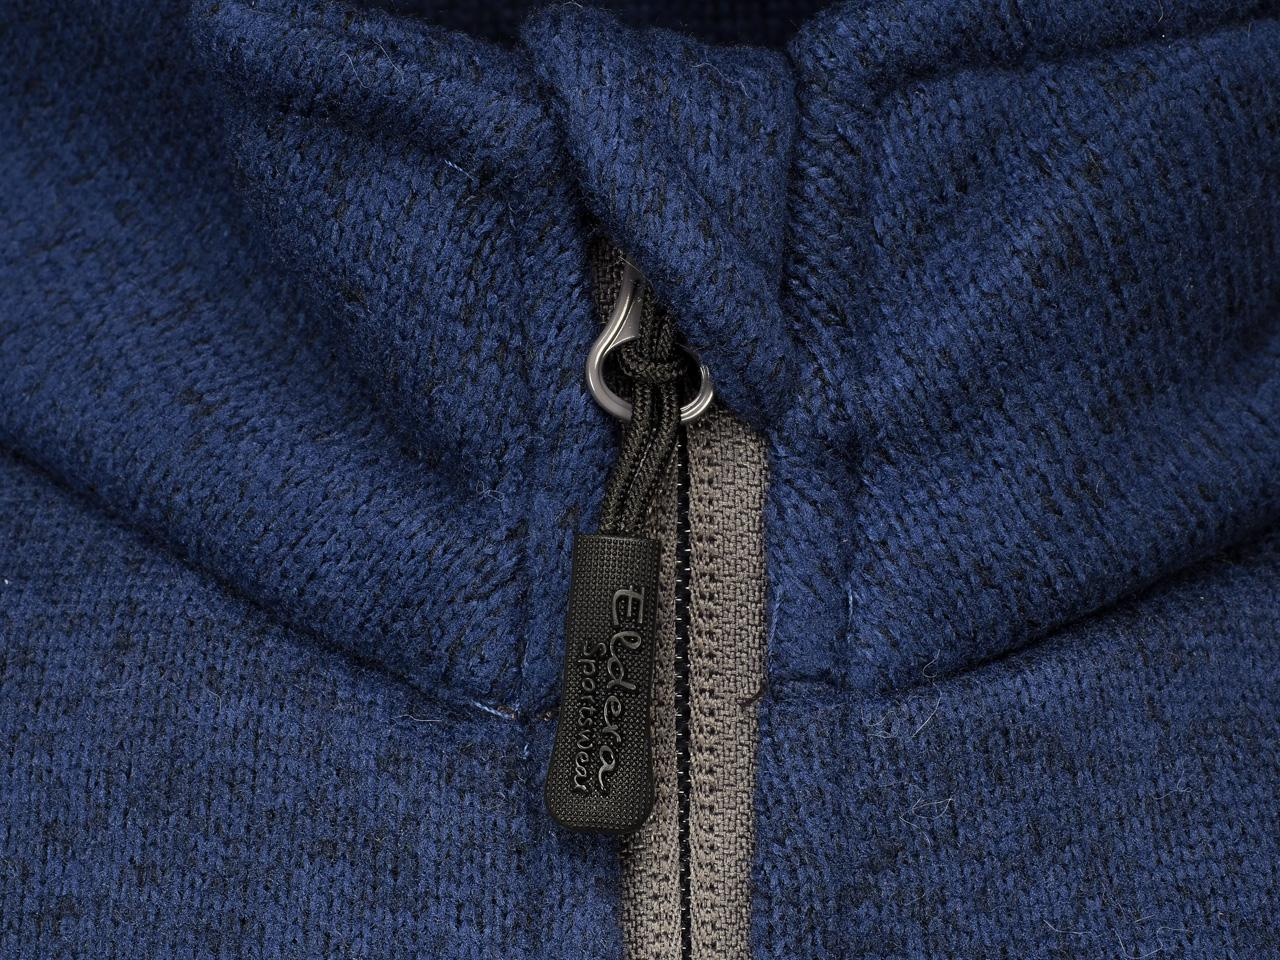 Jackets-Sweaters-Zip-Eldera-Sportswear-Croket-Navy-Ch-Fz-Vest-Blue-59840-New thumbnail 3